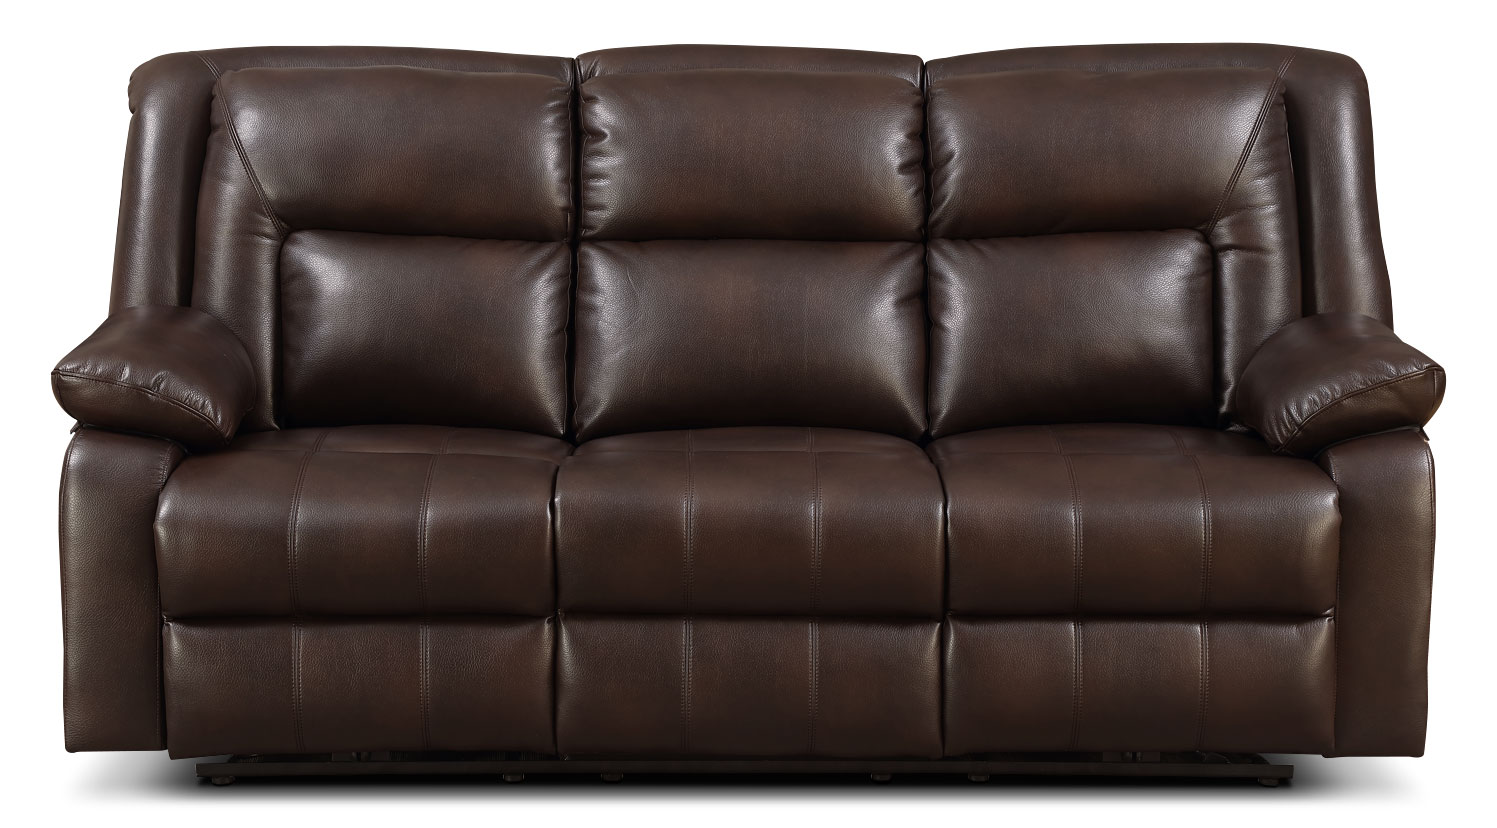 Blane Leather-Look Fabric Power Reclining Sofa – Brown